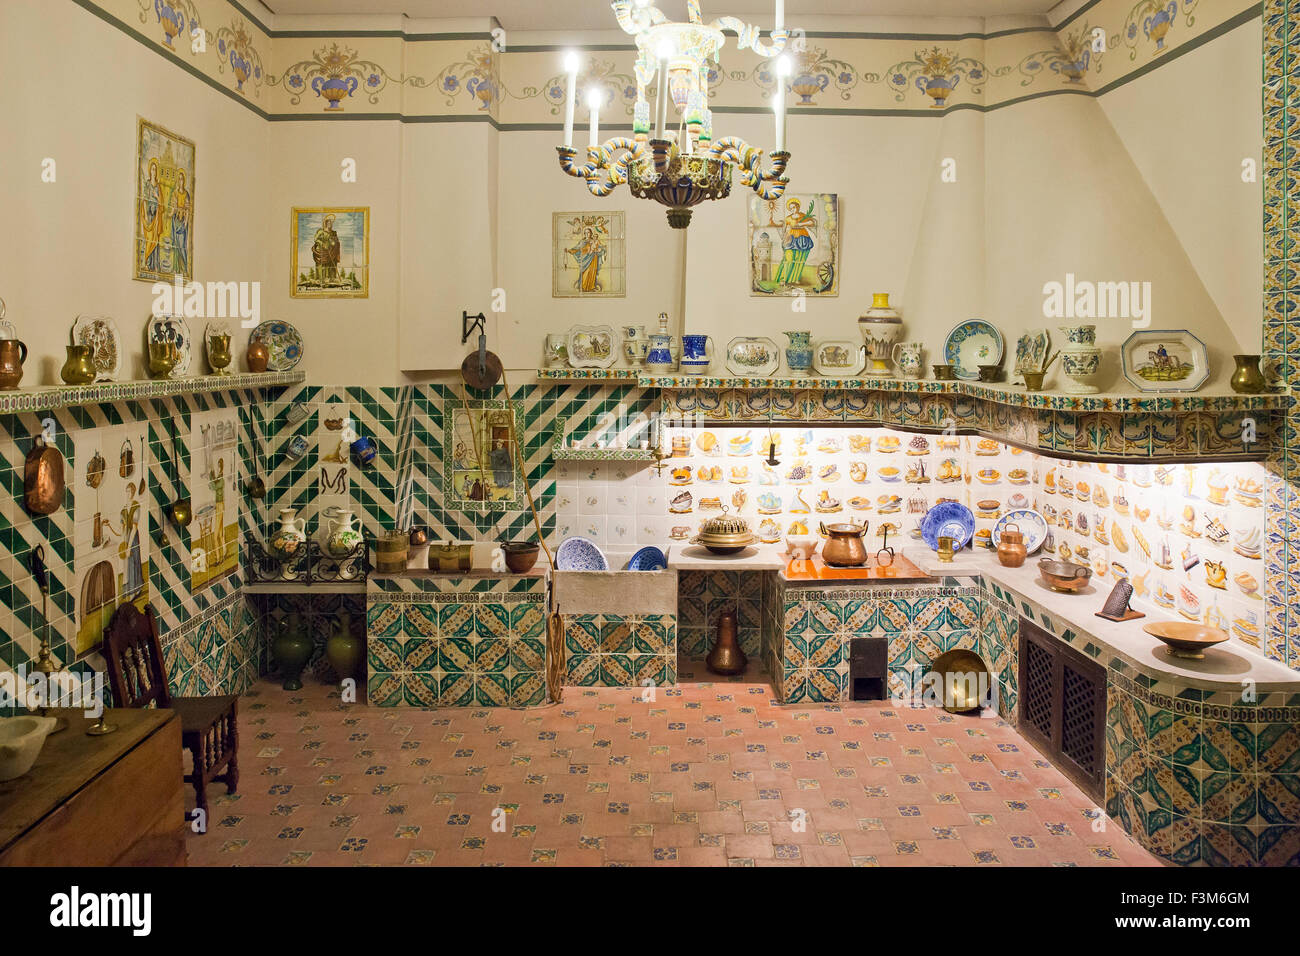 Vintage Spanish Kitchen, National Museum of Ceramics and Decorative Arts, Valencia, Spain Stock Photo